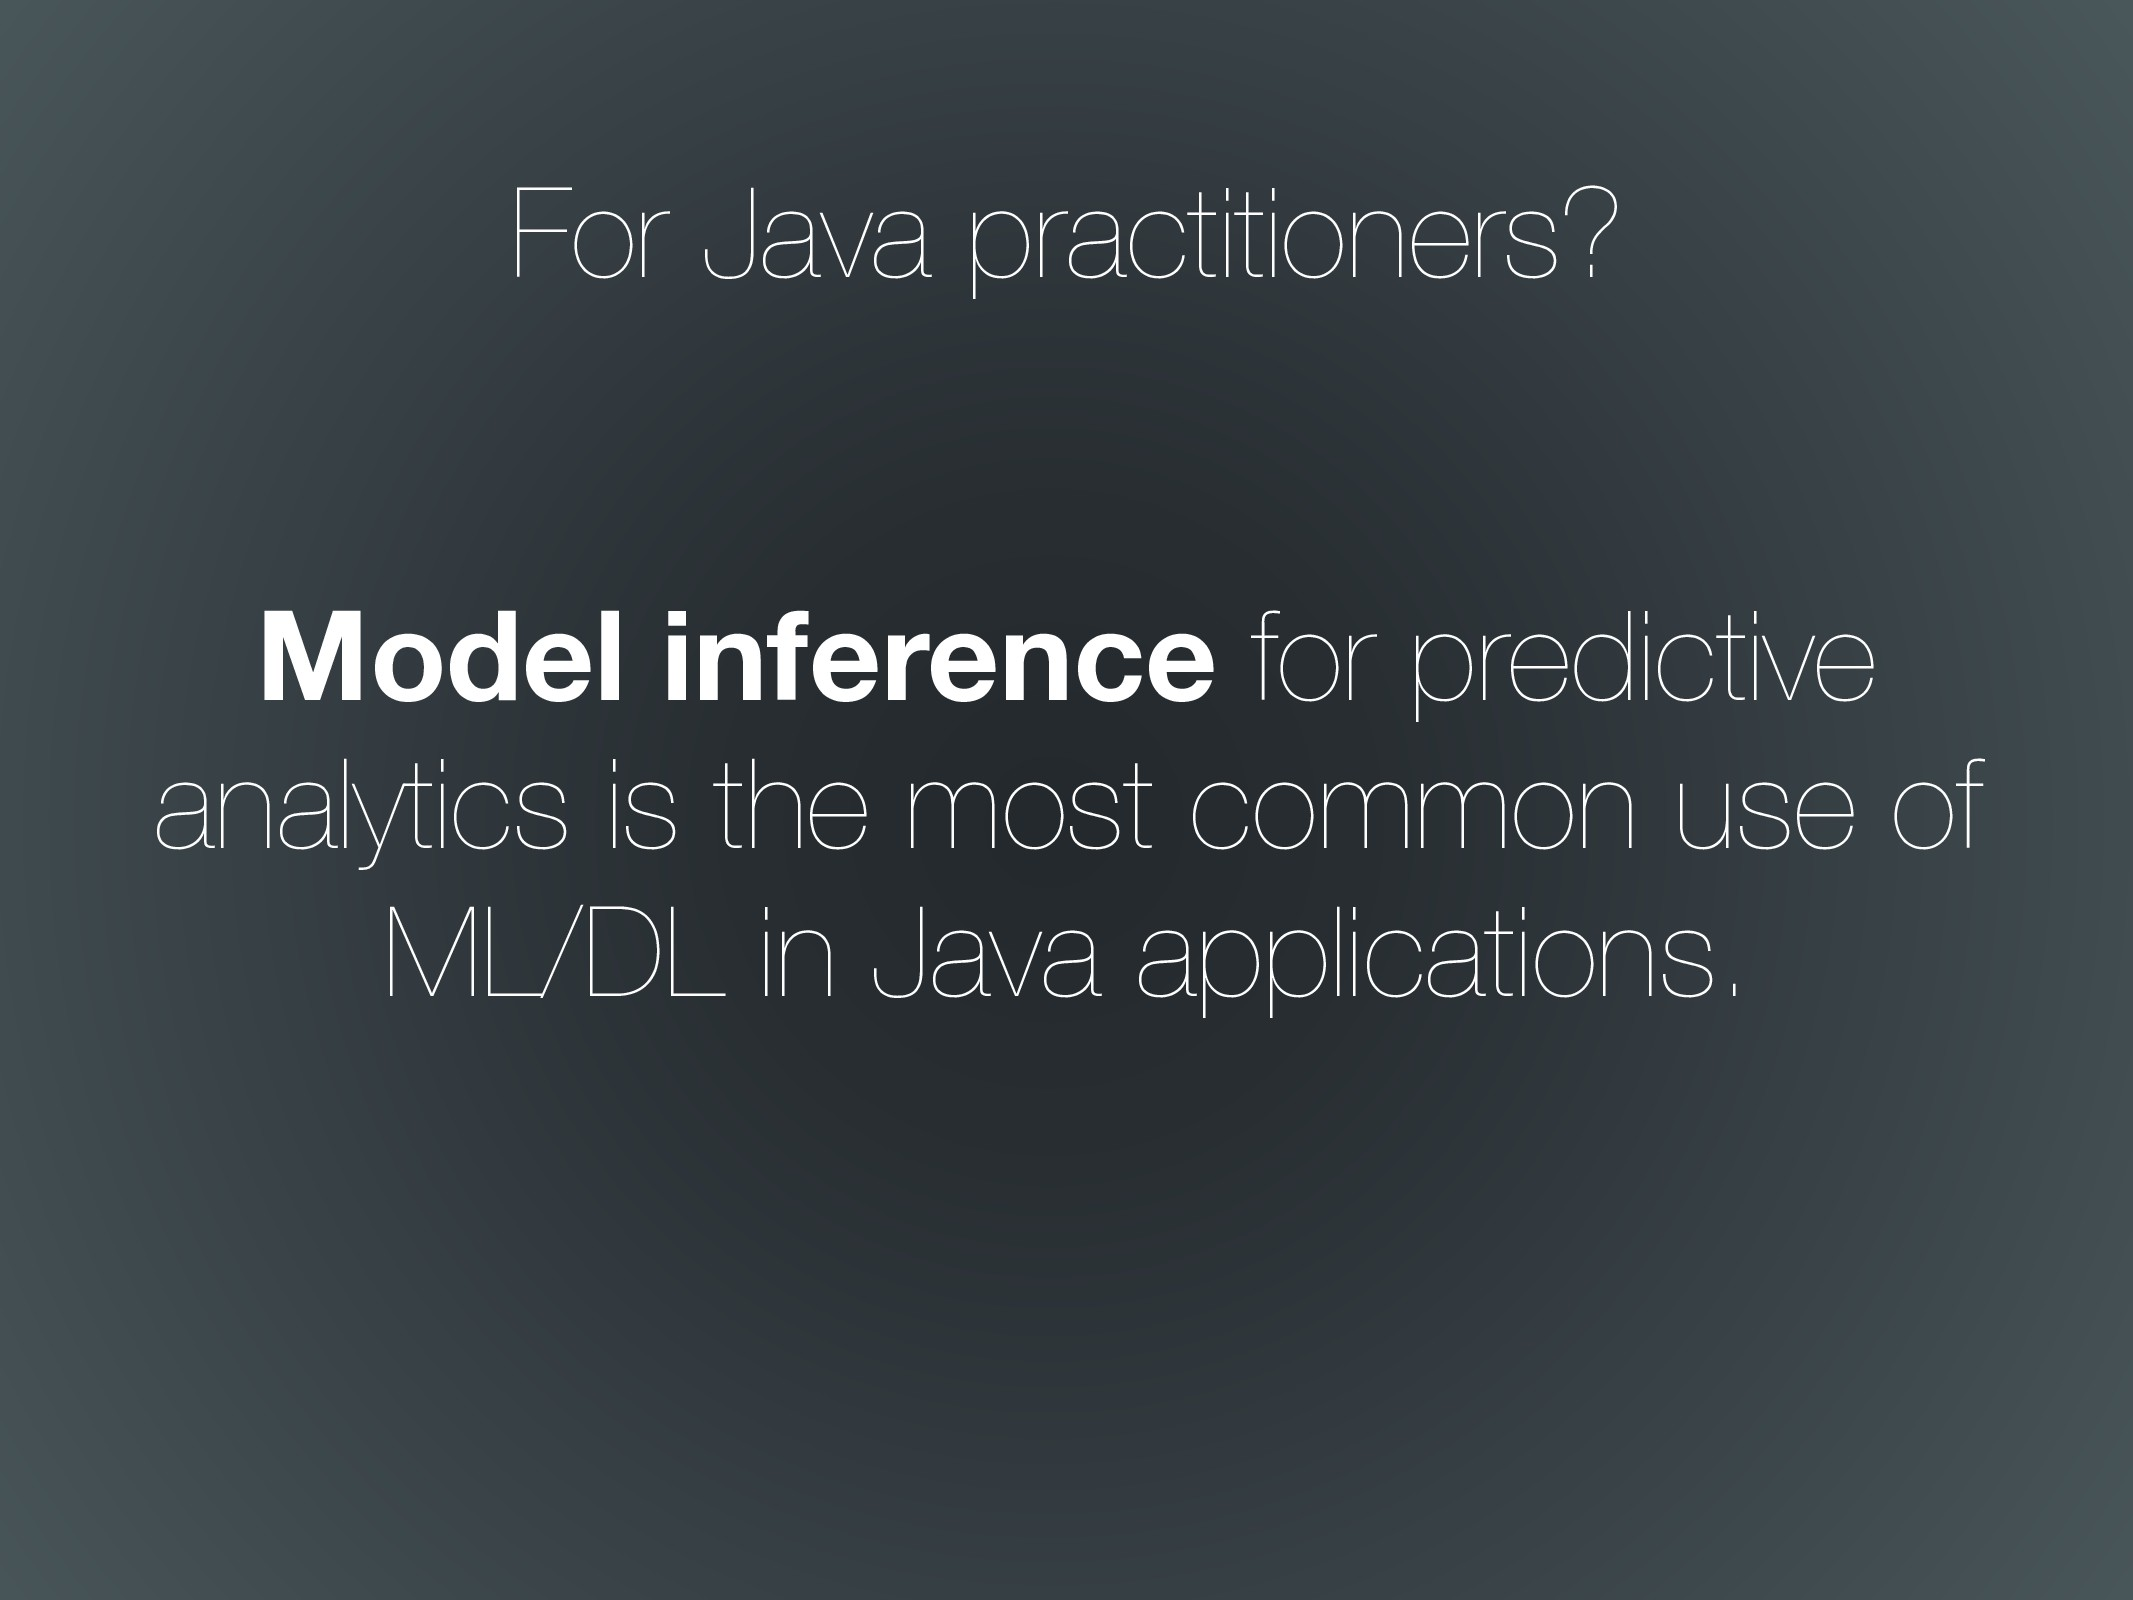 Model inference for predictive analytics is the...